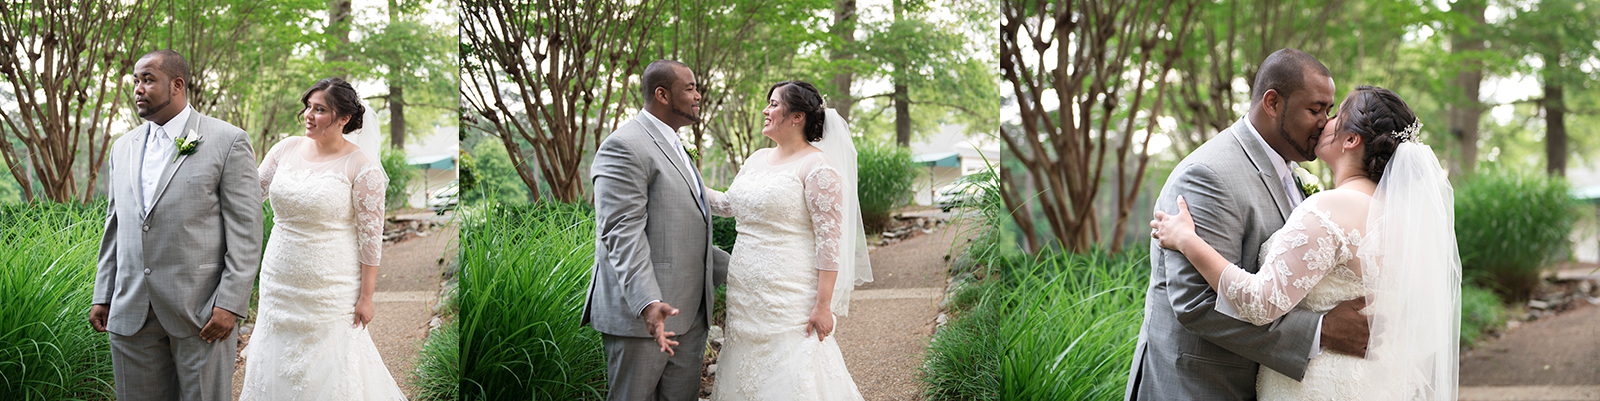 wedding-photographer-bride-groom-portrait-summer-brandermill-country-club-virginia-first-look